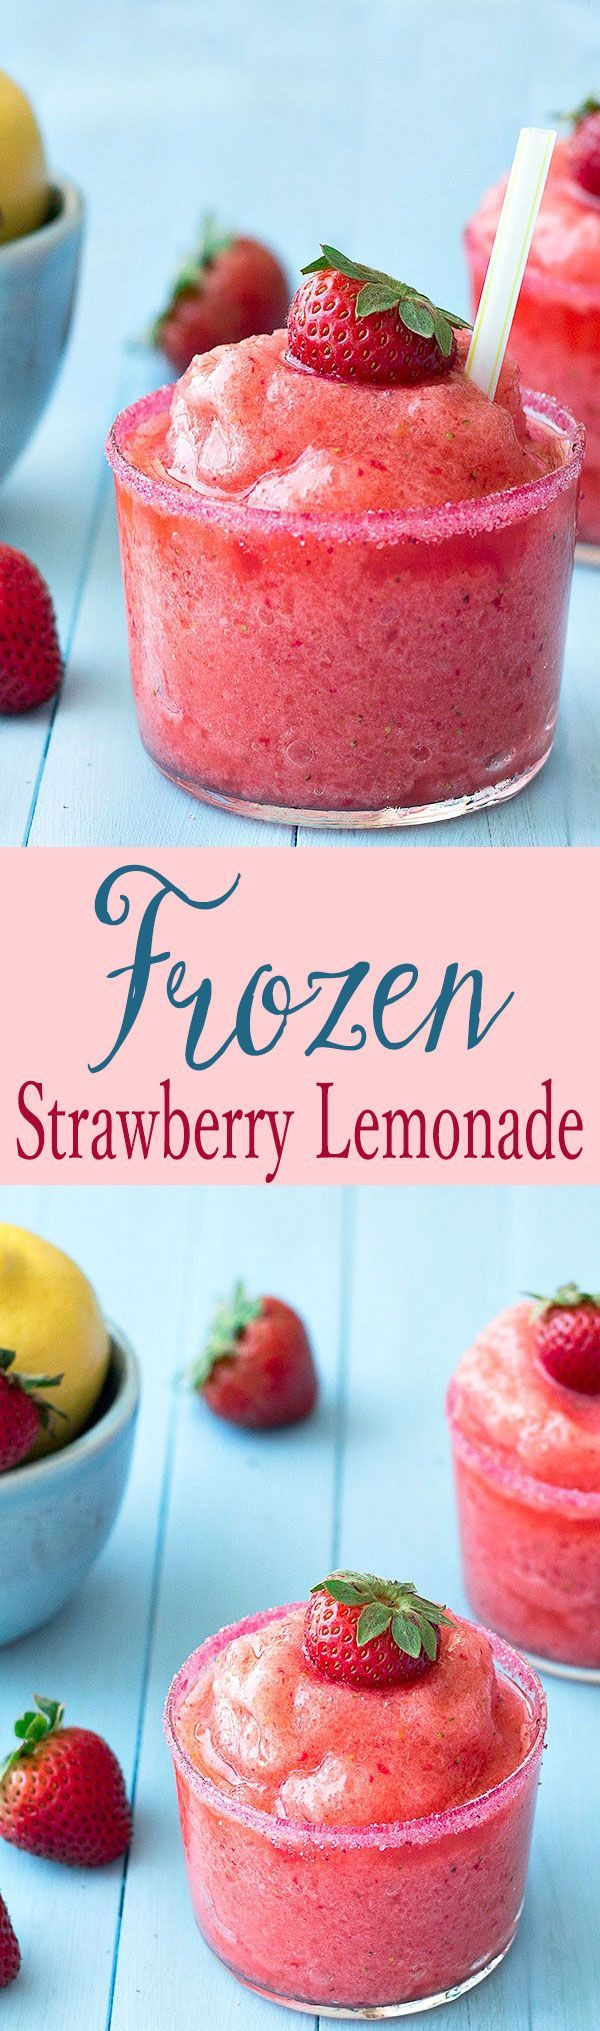 This frozen strawberry lemonade is so easy to make, full of fresh strawberries and tart lemons. It's the perfect drink to cool you off this summer!